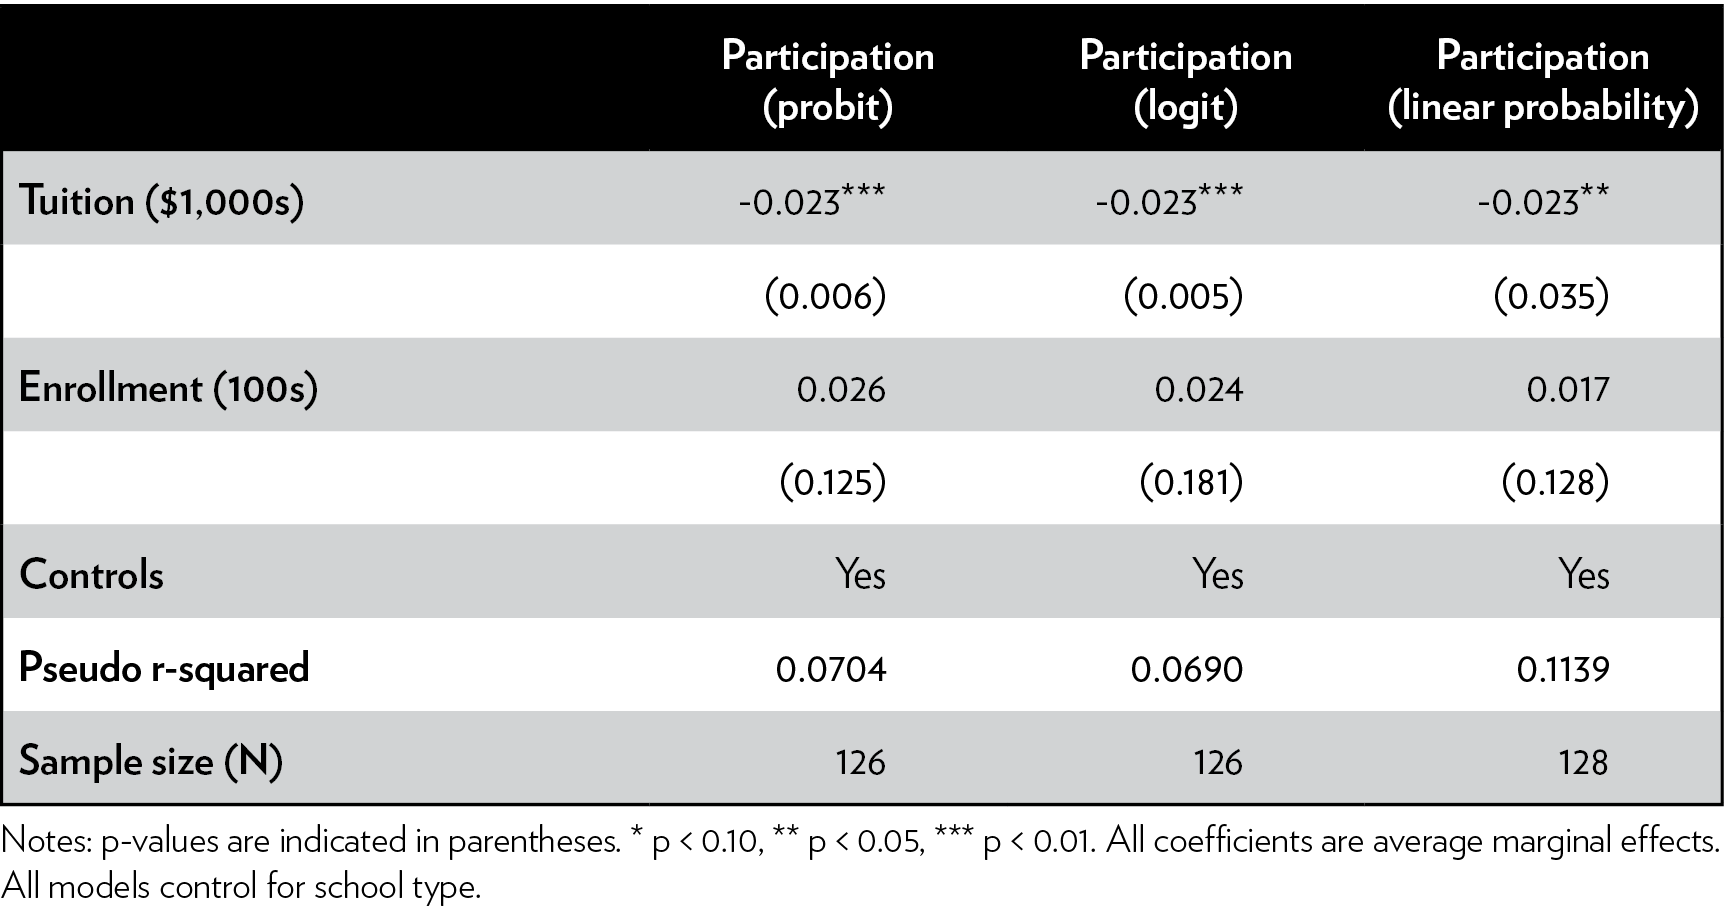 New Study Suggest Voucher Programs Are >> Who Participates An Analysis Of School Participation Decisions In